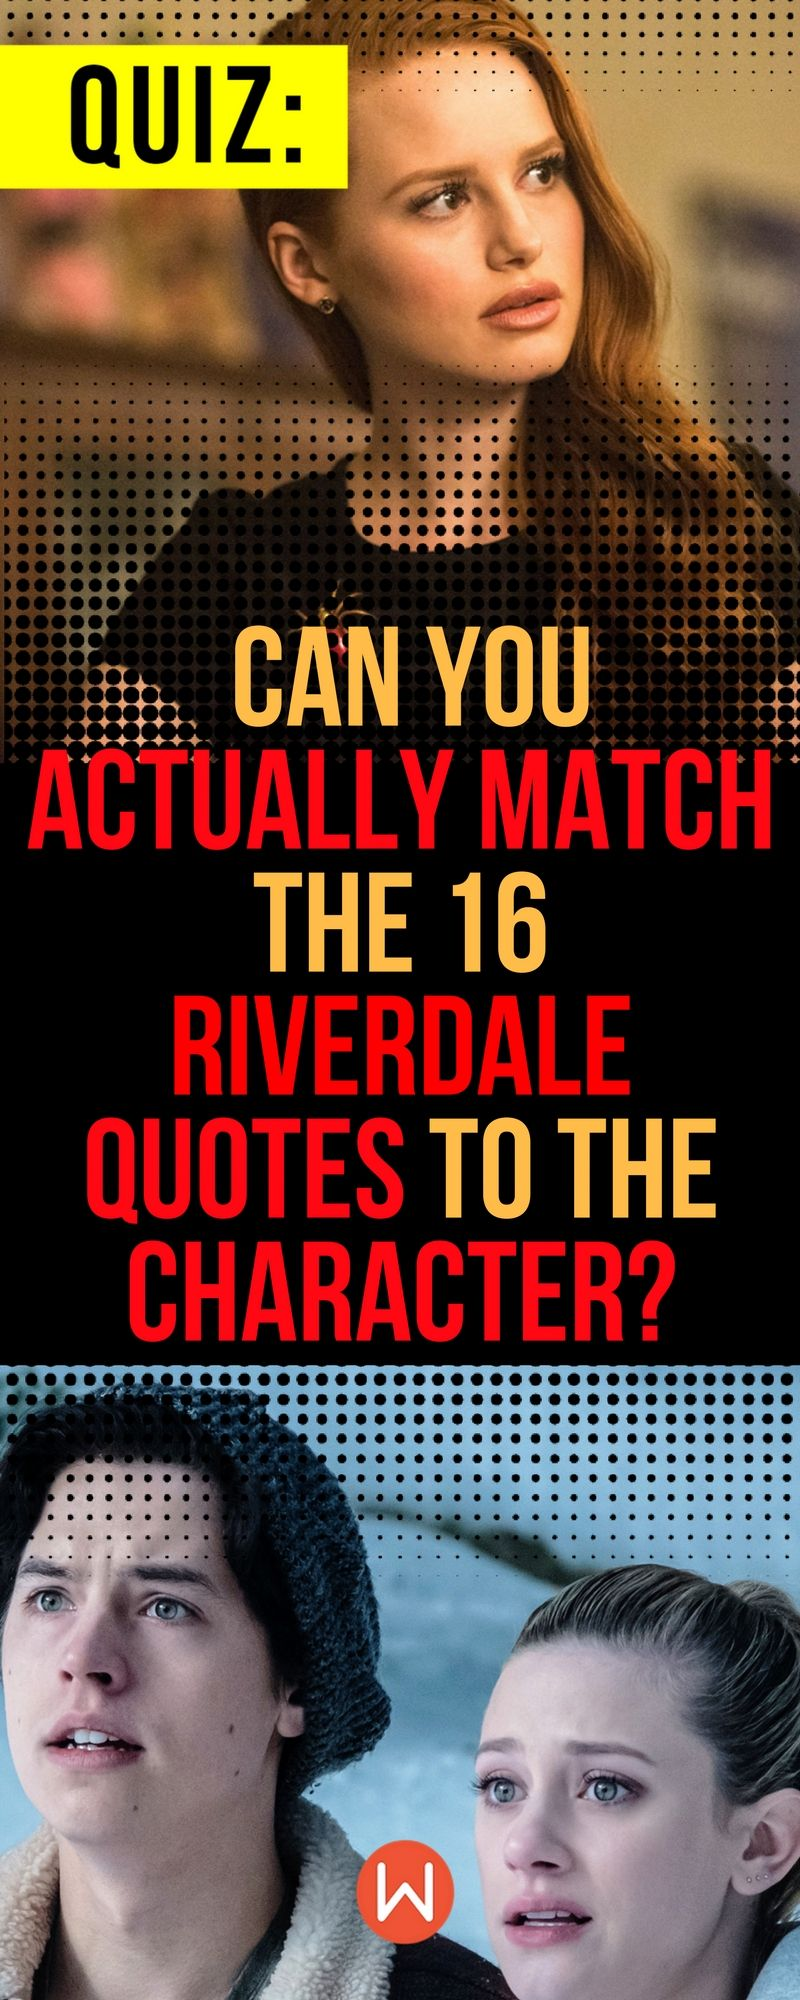 Quiz: Can You Actually Match The 25 Riverdale Quotes To The